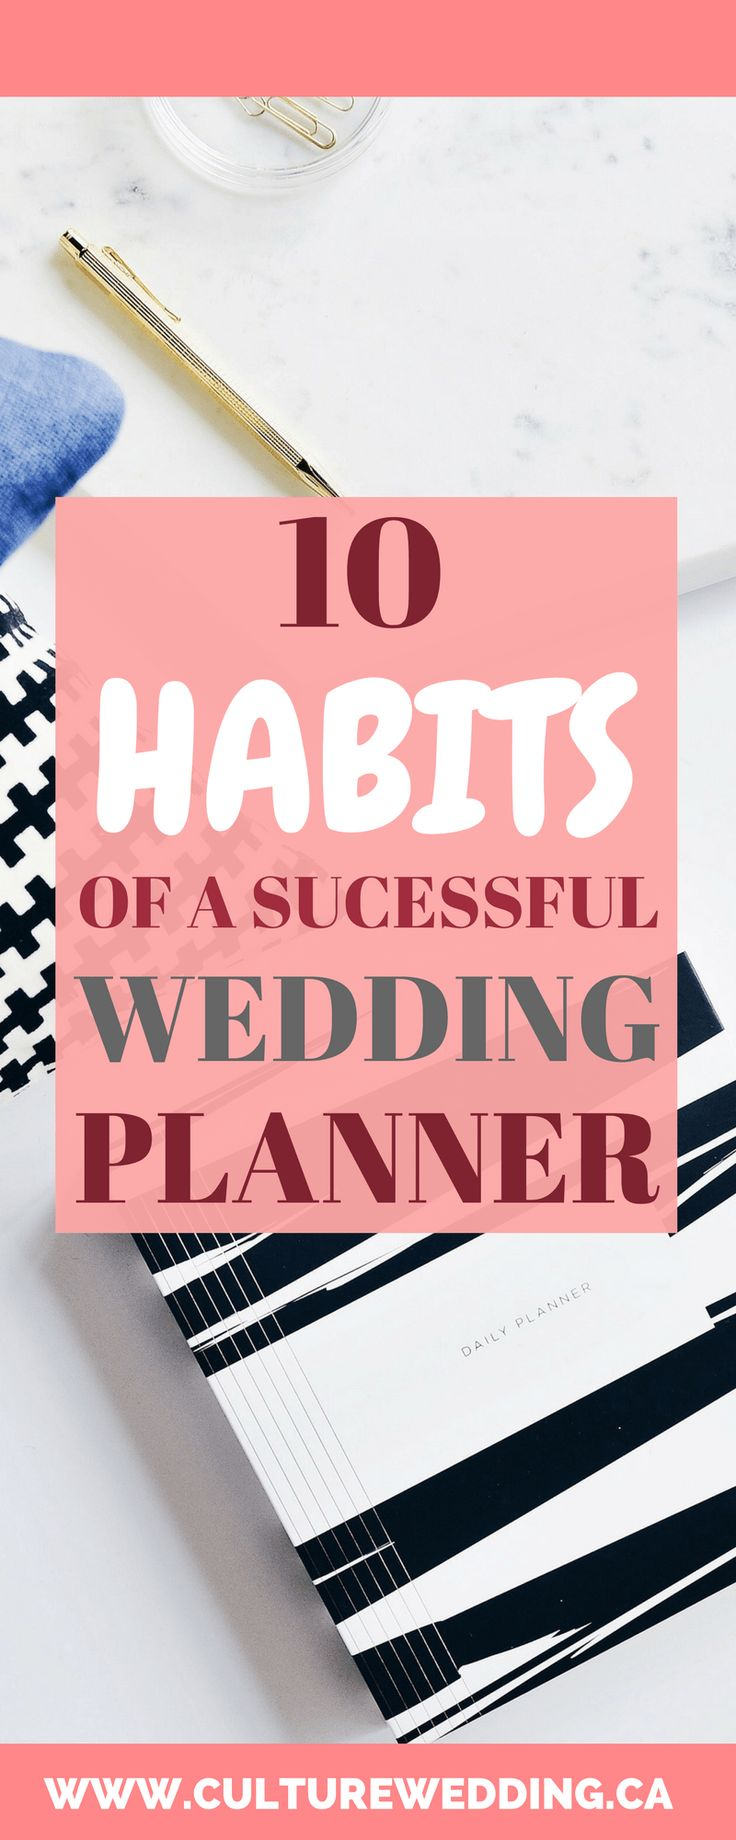 10 Habits of a successful wedding planner. how to become a wedding planner with no experience. How do you become a wedding planner? how to become a successful wedding planner. what do you need to become a wedding planner. how to become a wedding planner from home. becoming a wedding planner career. becoming a wedding planner tips. becoming a wedding planner business.